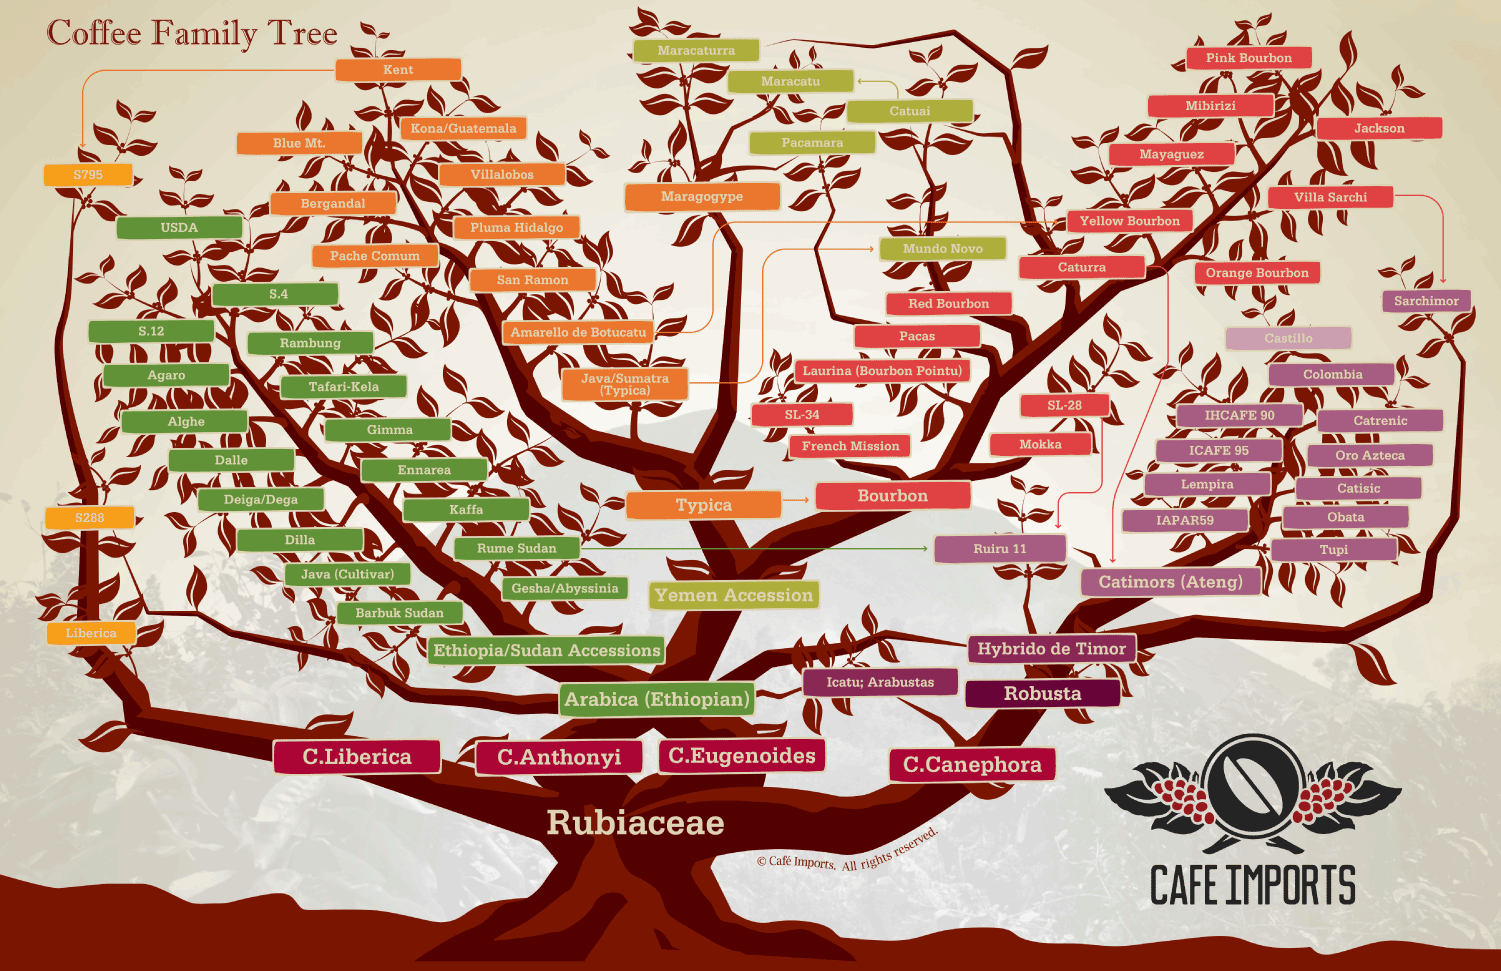 Cafe Imports Coffee Family Tree